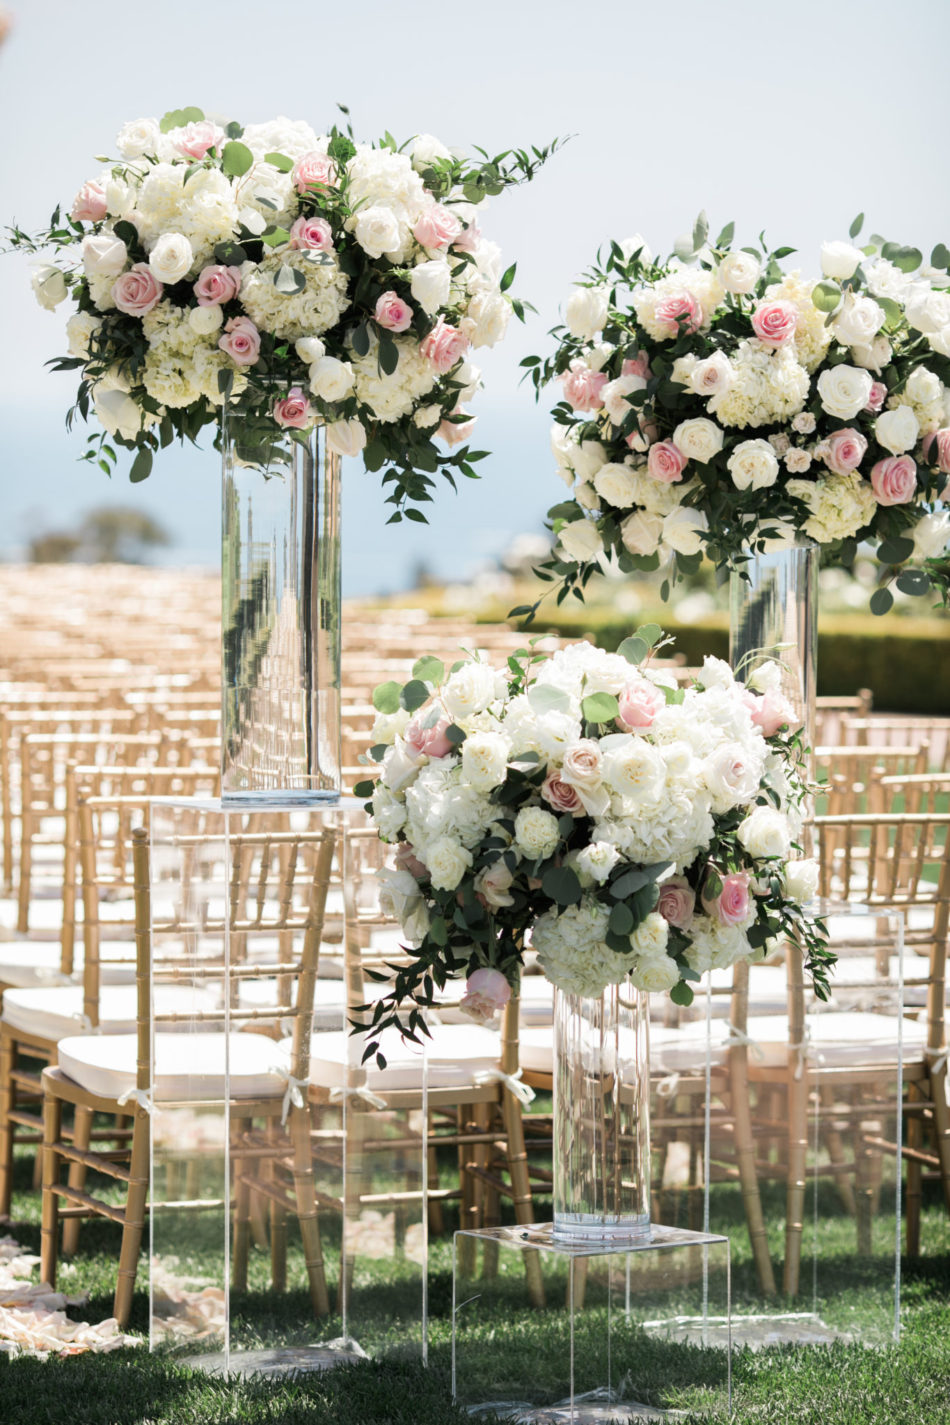 indian fusion wedding, blush florals, elevated floral arrangements, blush floral decor, floral design, florist, wedding florist, wedding flowers, orange county weddings, orange county wedding florist, orange county florist, orange county floral design, flowers by cina